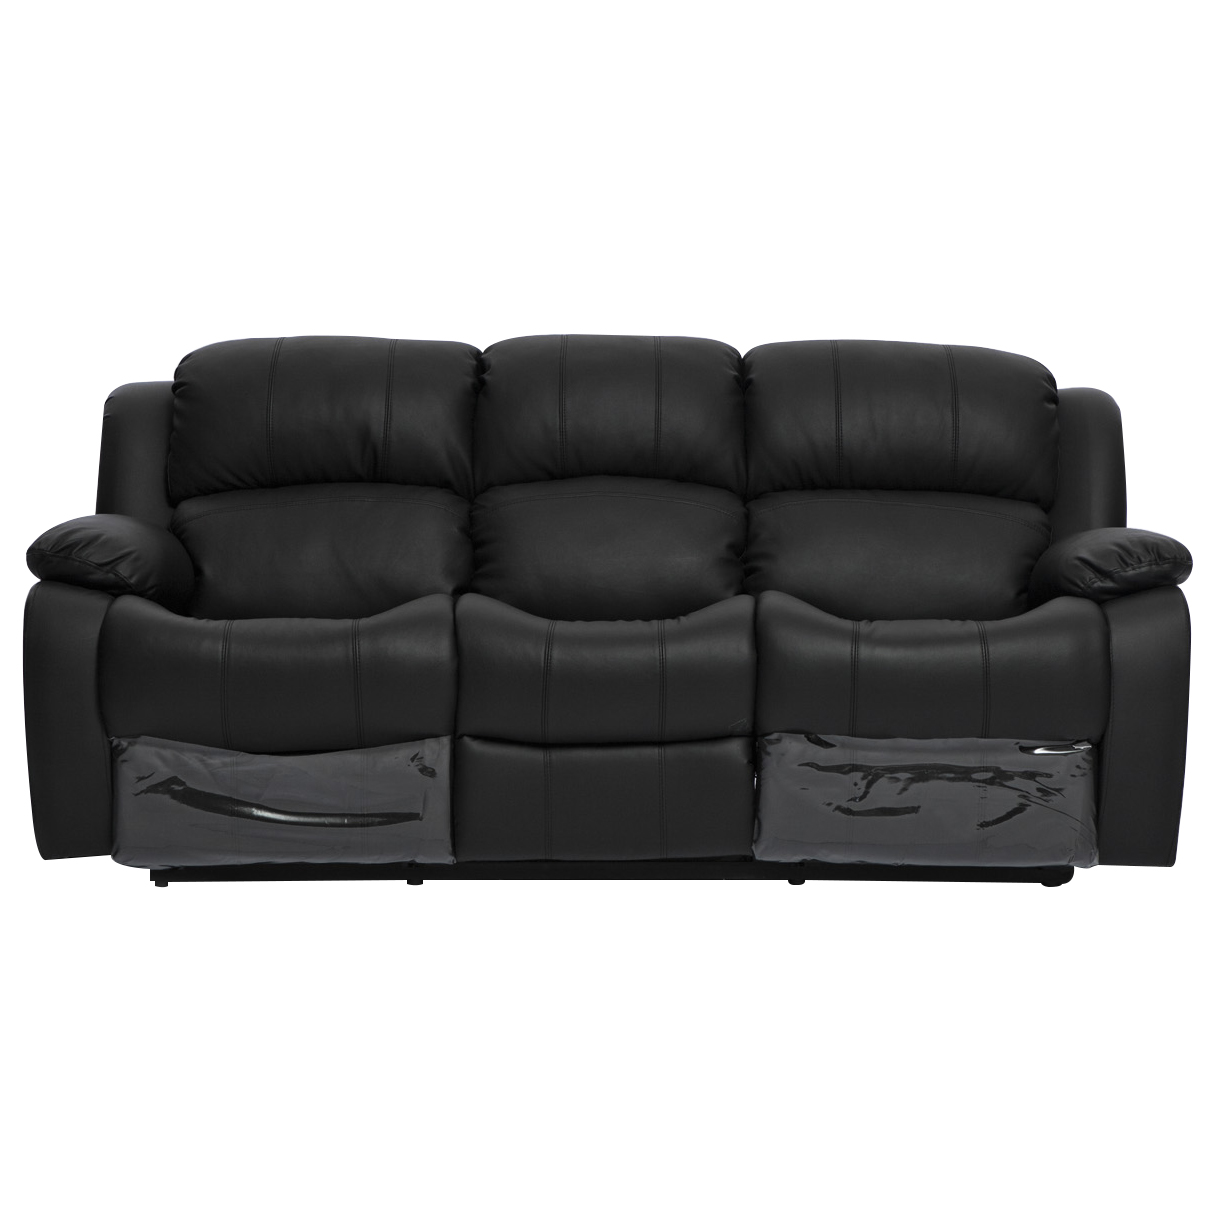 Best Leather Reclining Sofa Brands: Kacey Brand New Black Leather 3 Seater Chair Recliner